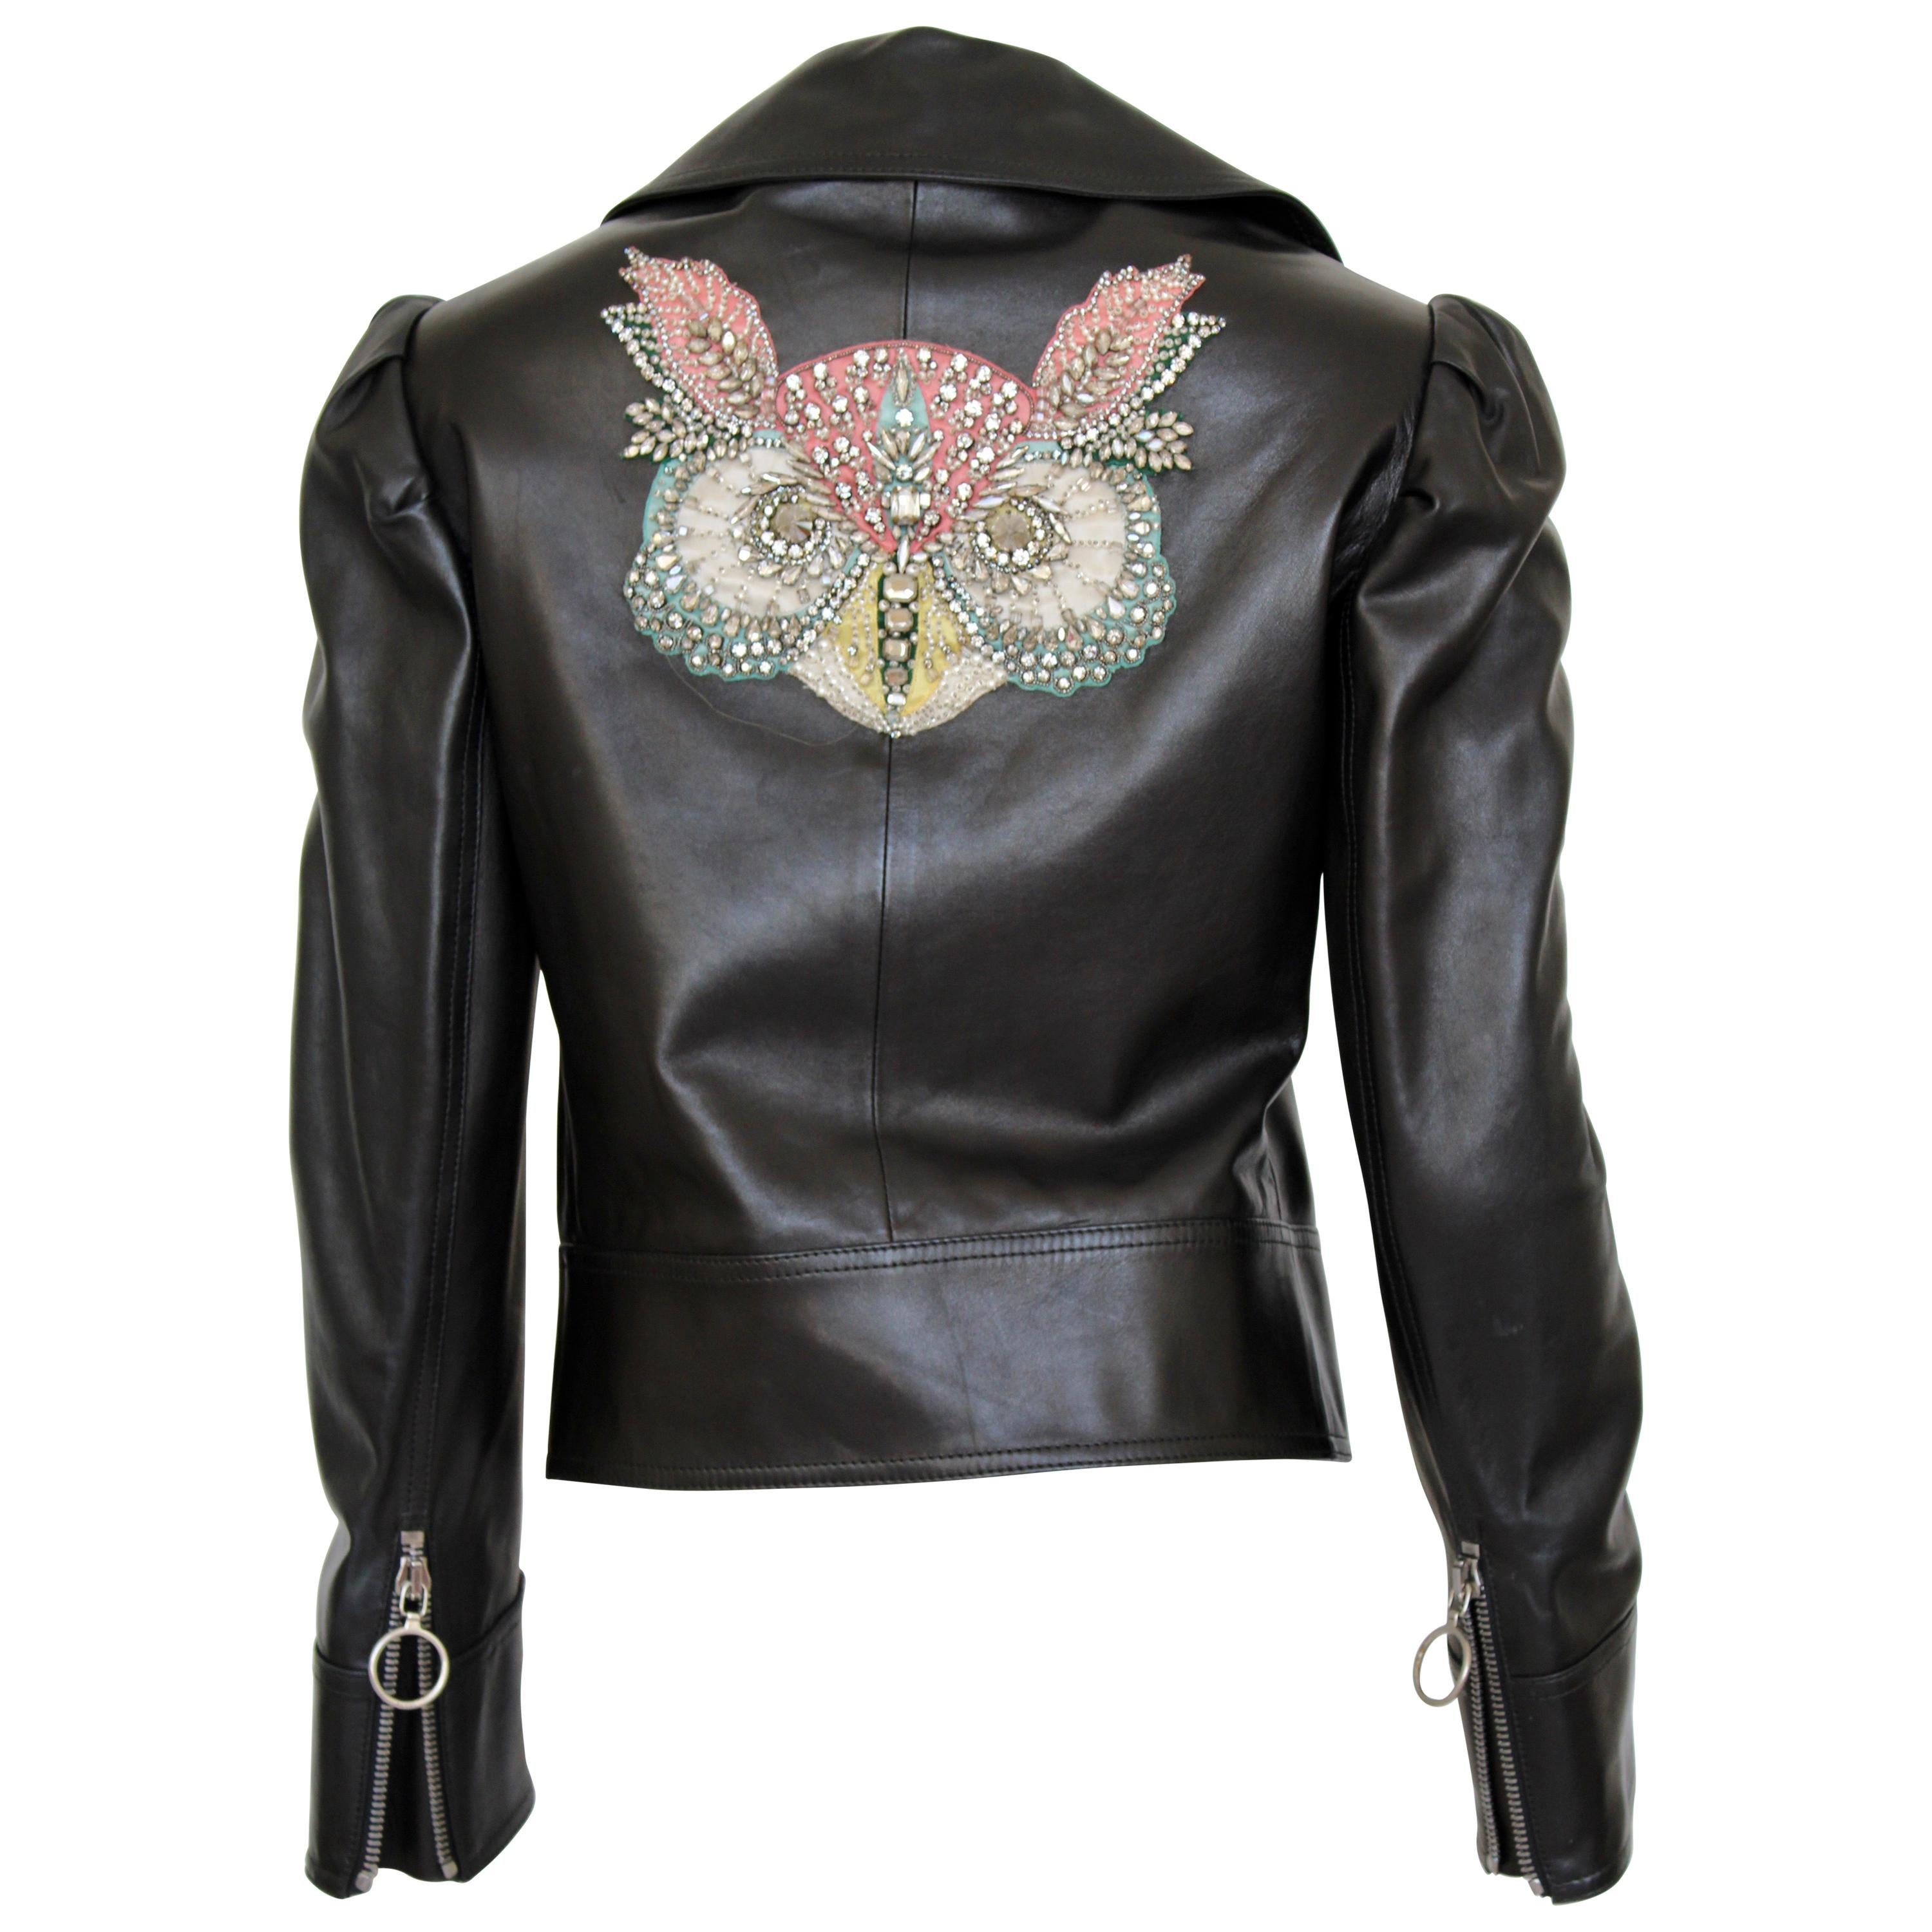 Gucci leather jacket with embroidered/crystal owl design